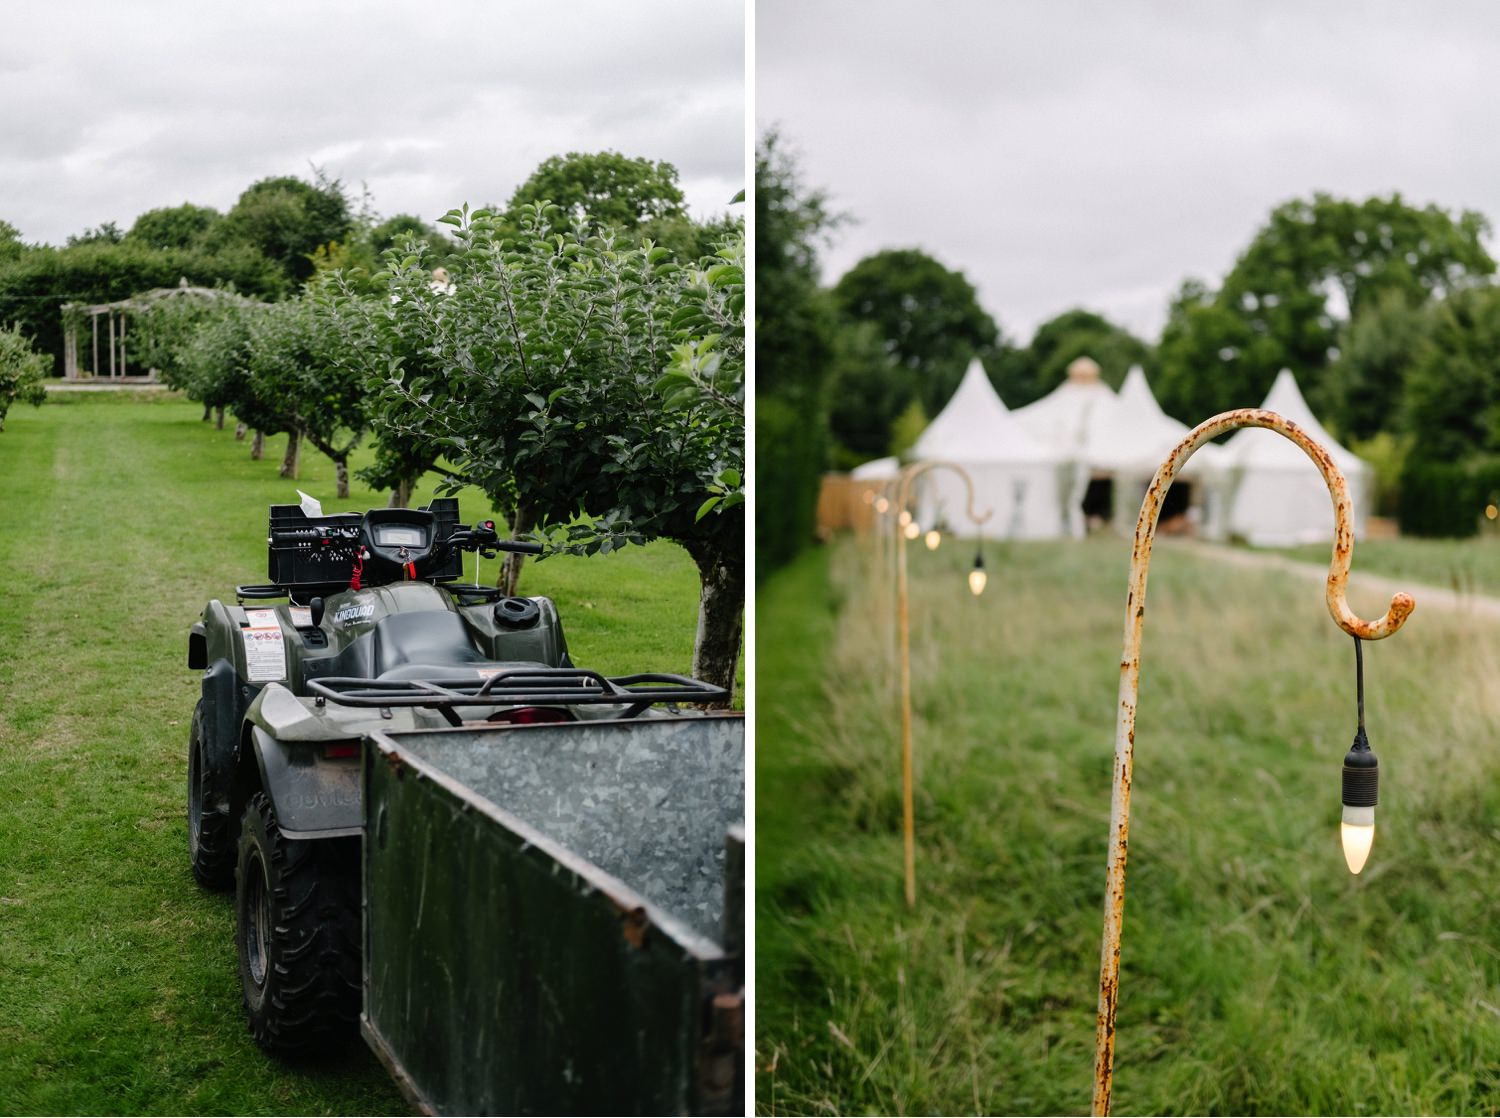 dmp0107_dmp0108_gardens_guests_morning_ballintubbert_house_preparation_glamping_teepee_tents_festival_wedding